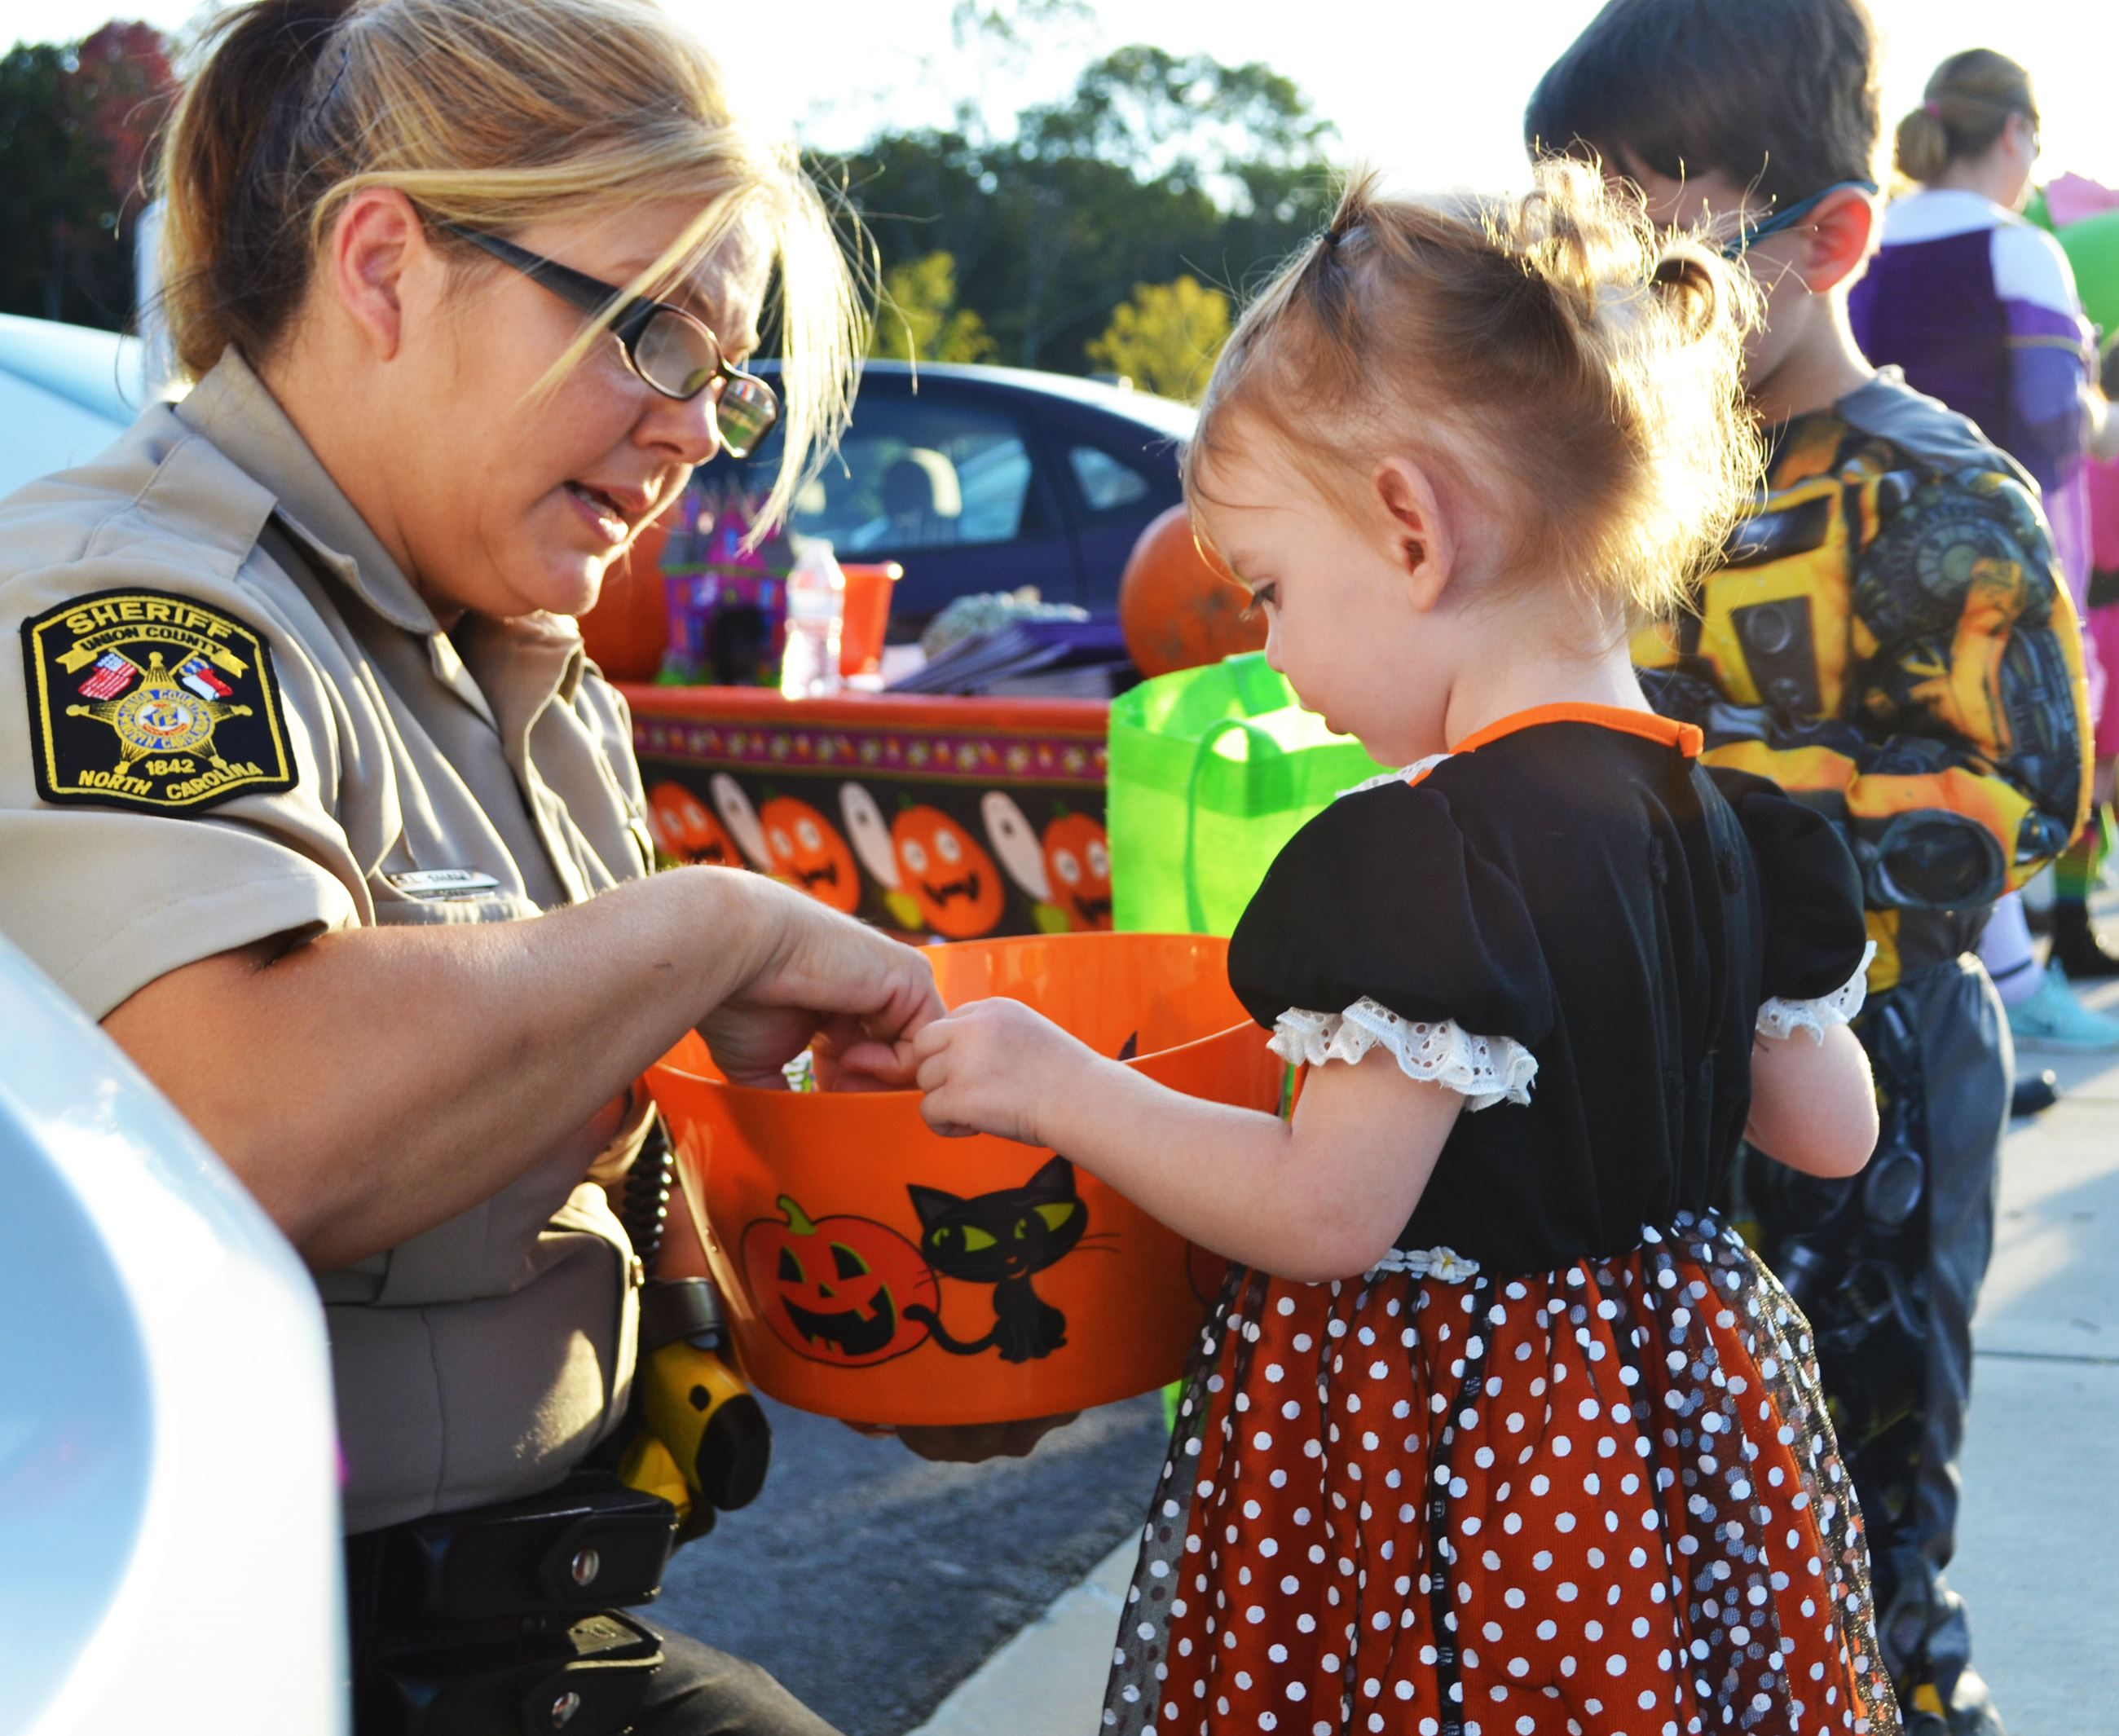 A child getting candy